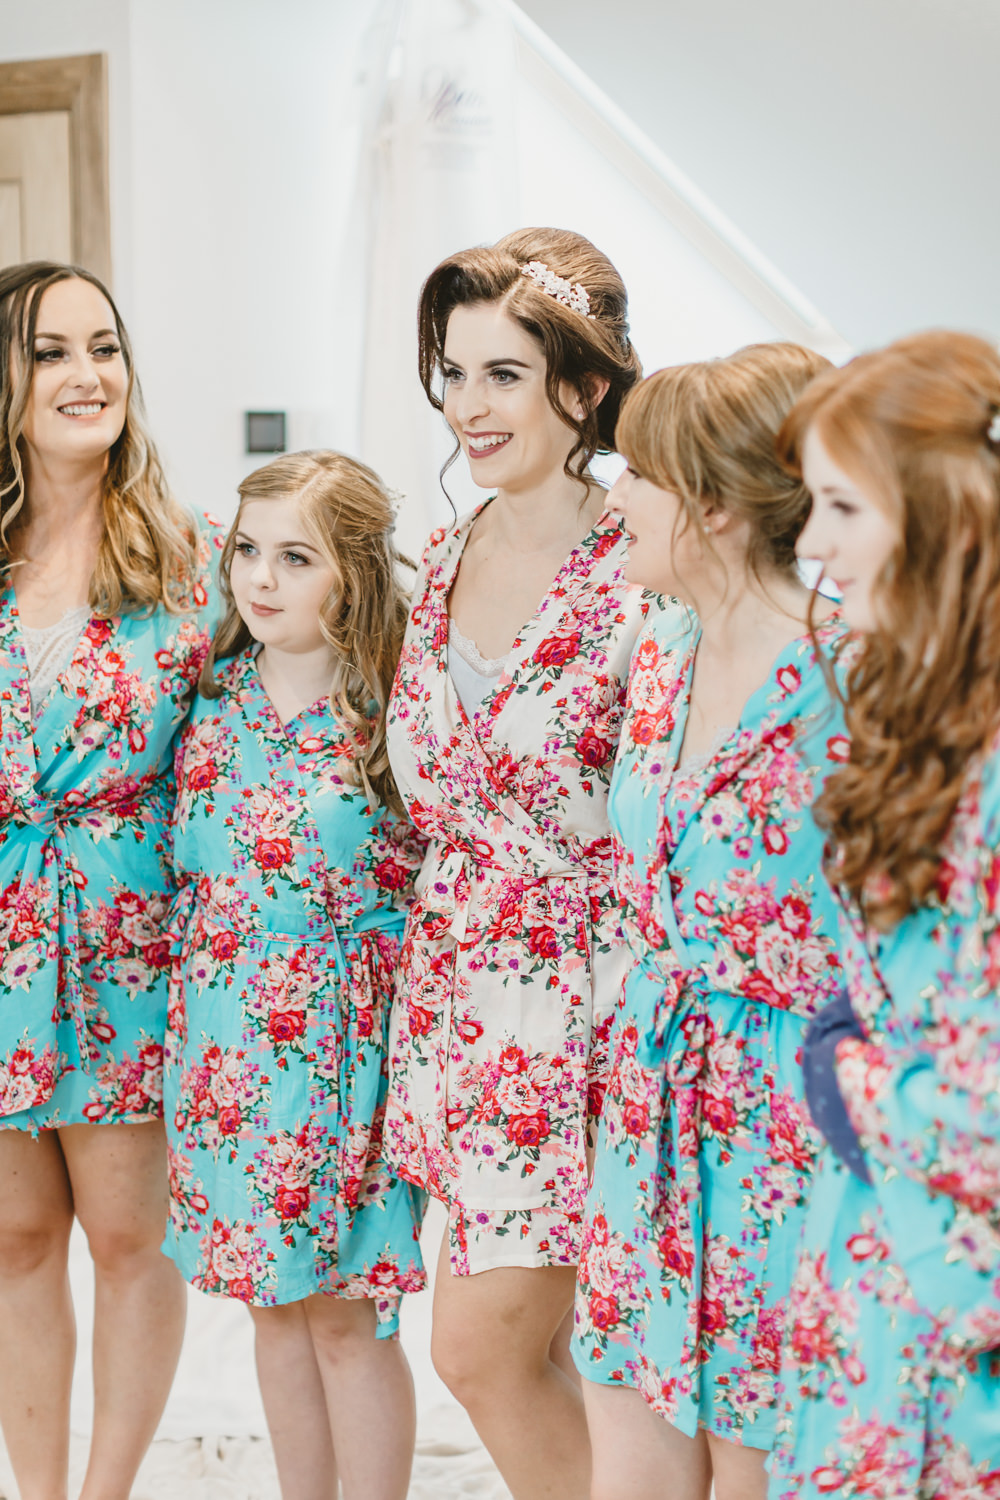 Floral Robes Dressing Gowns Bride Bridal Bridesmaids Prep GG's Yard Wedding Amy Lou Photography